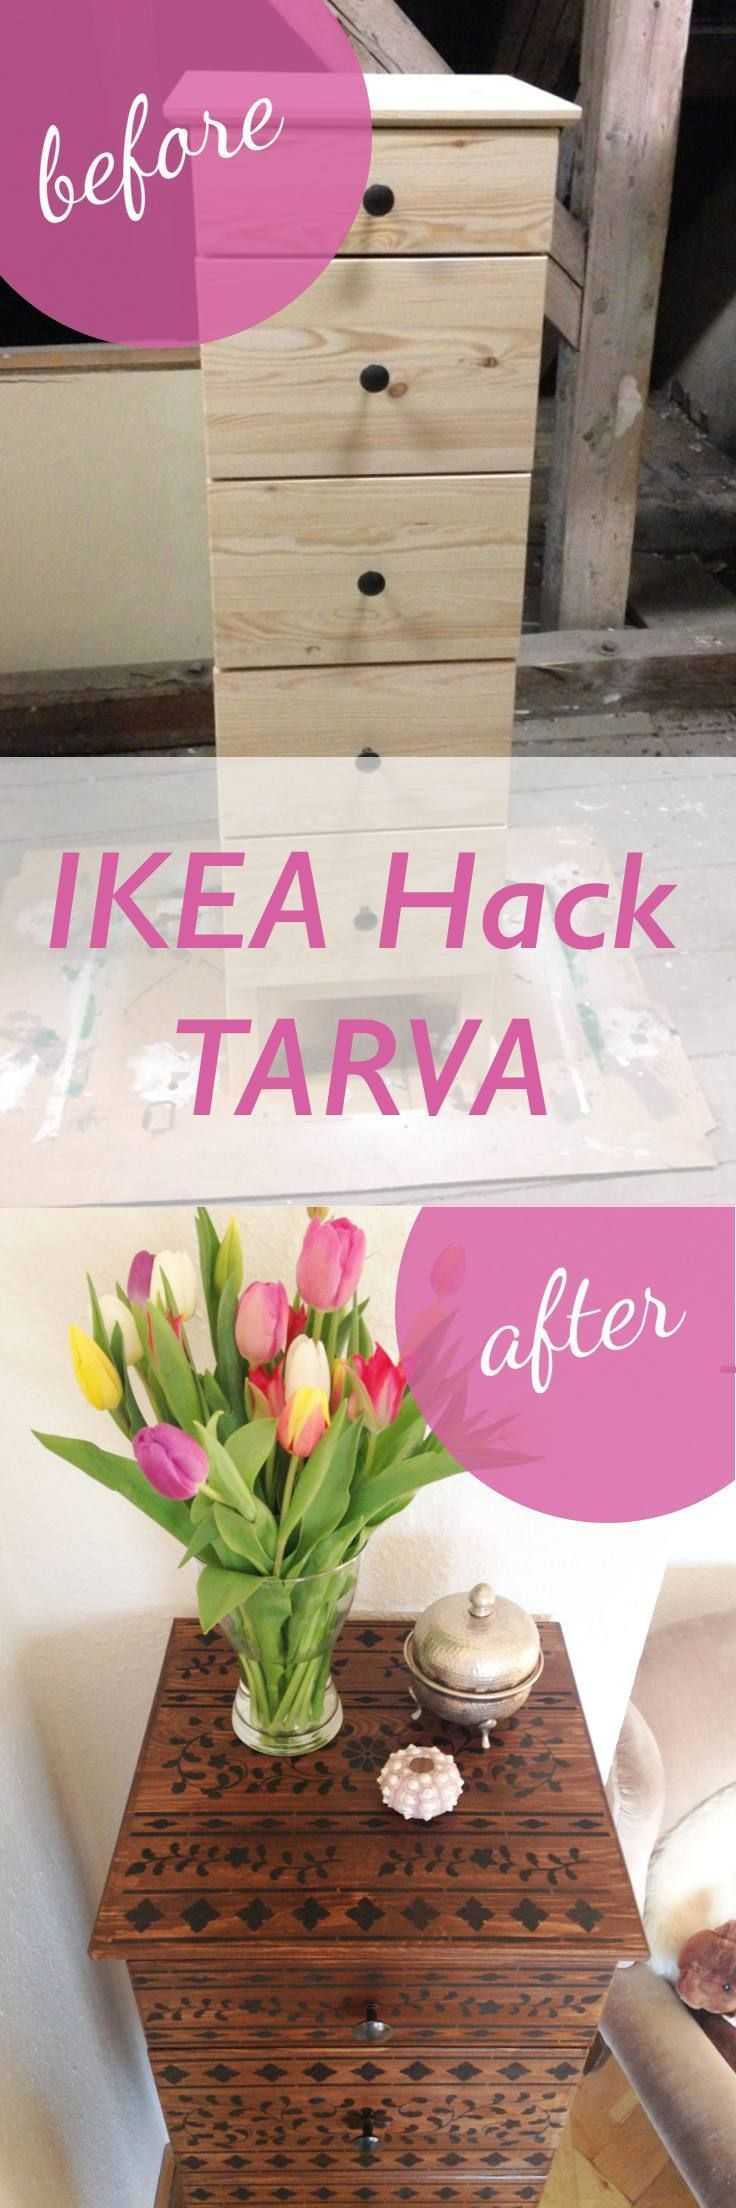 IKEA Hack TARVA – Oriental Vibes With Stain And Stencils